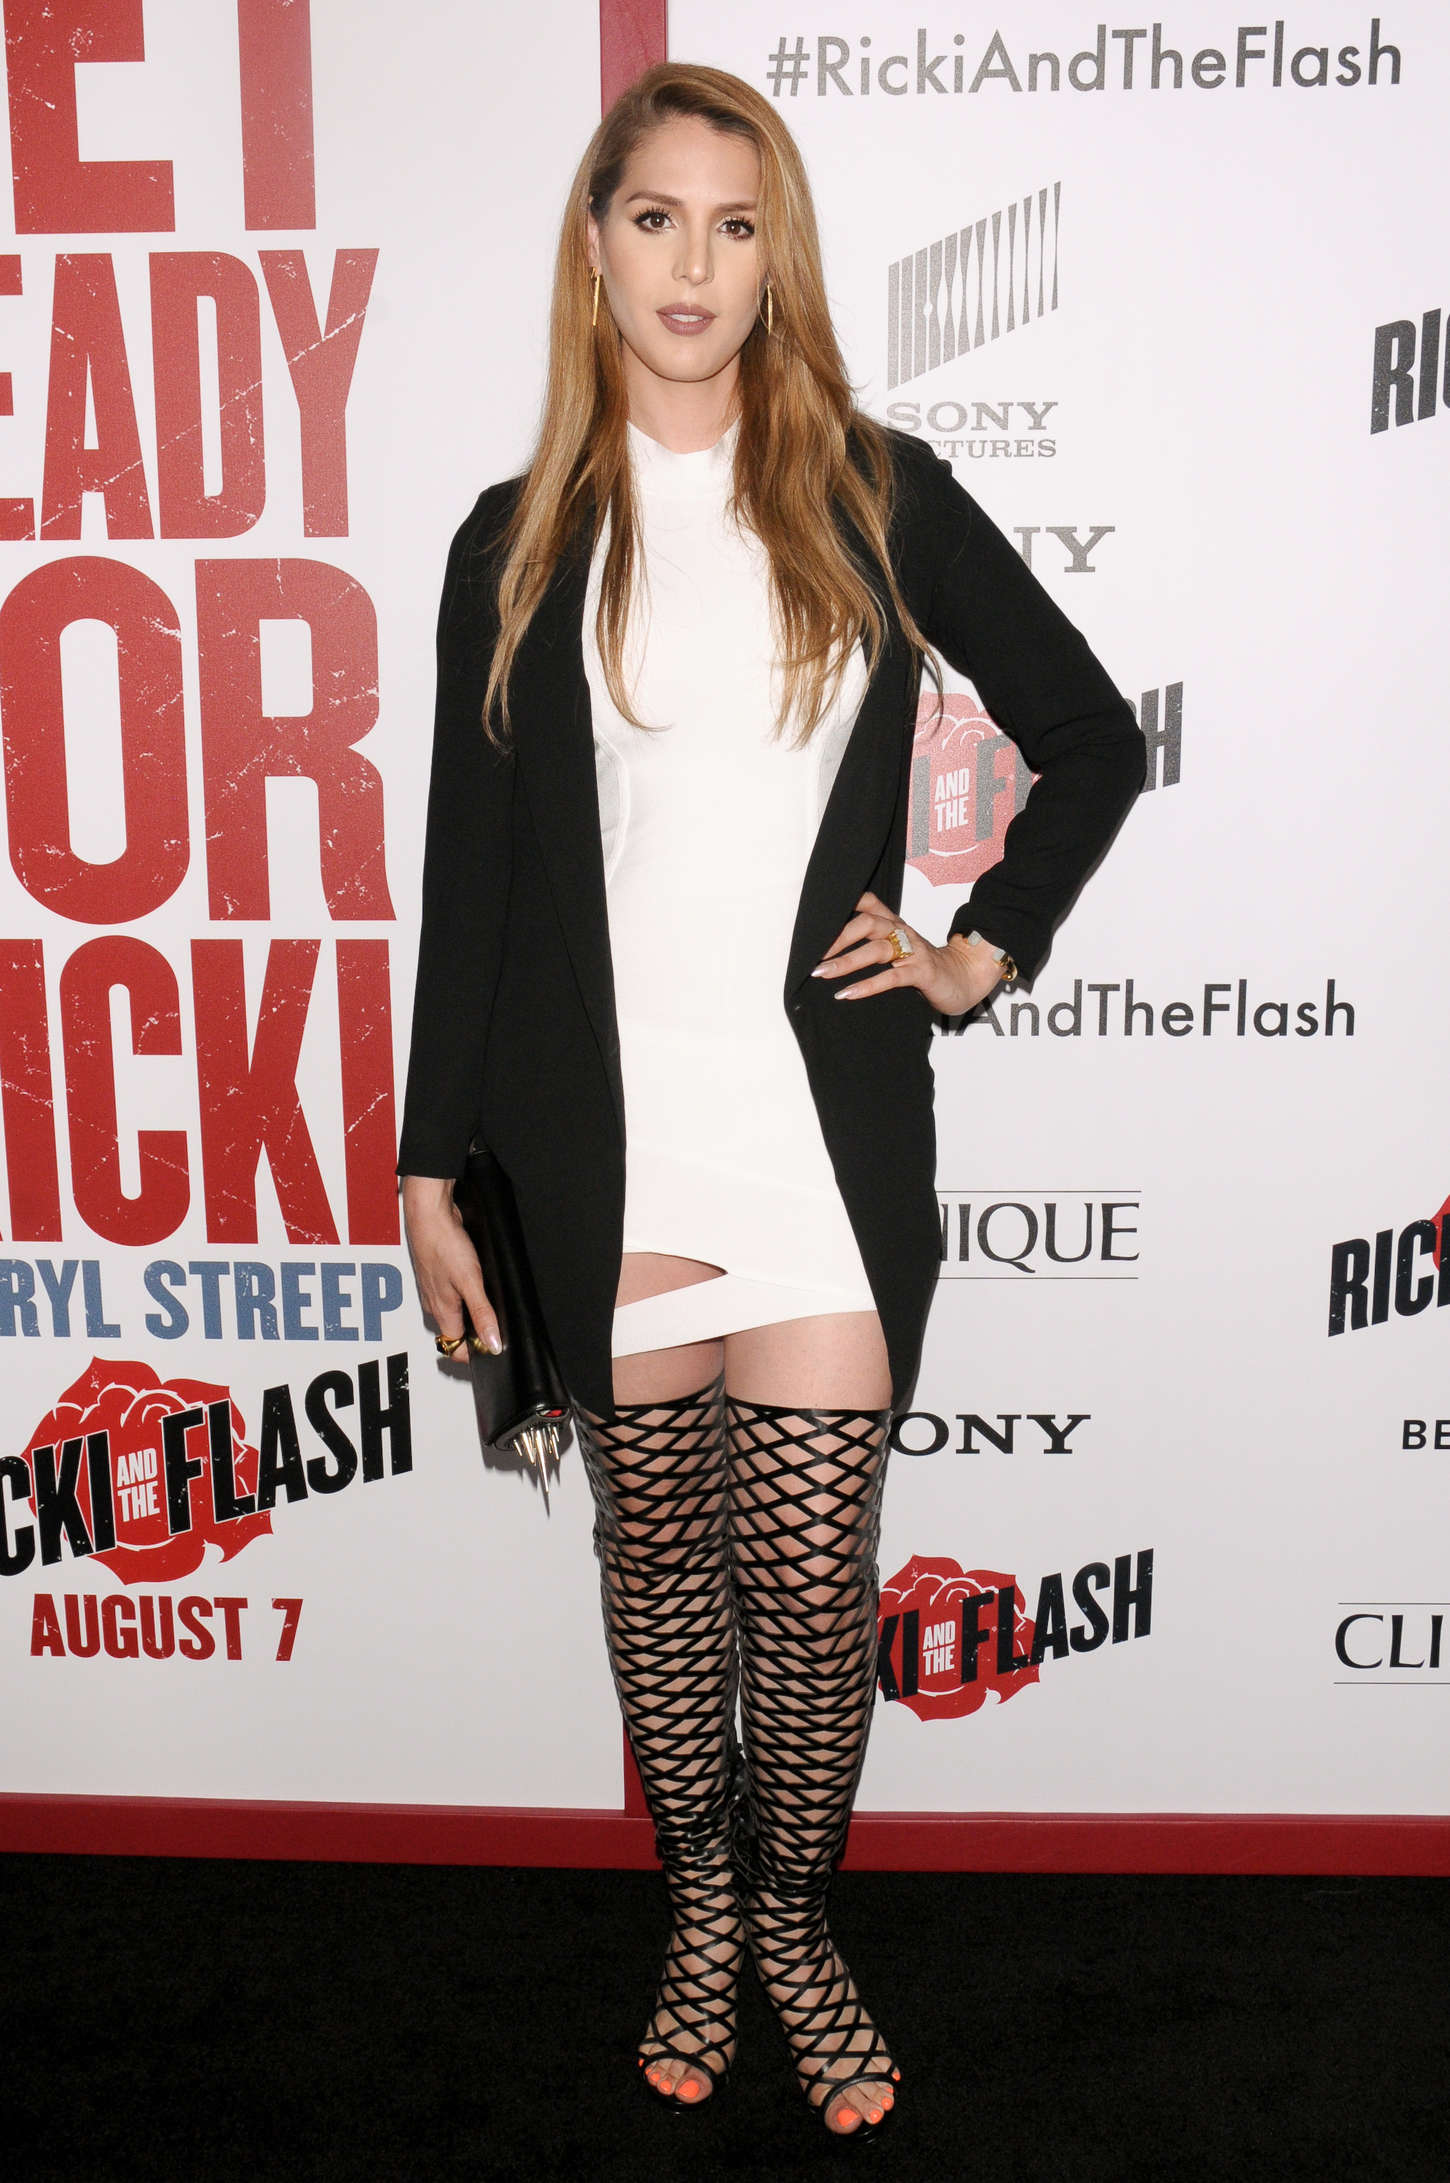 Carmen Carrera Ricki And The Flash Premiere in New York